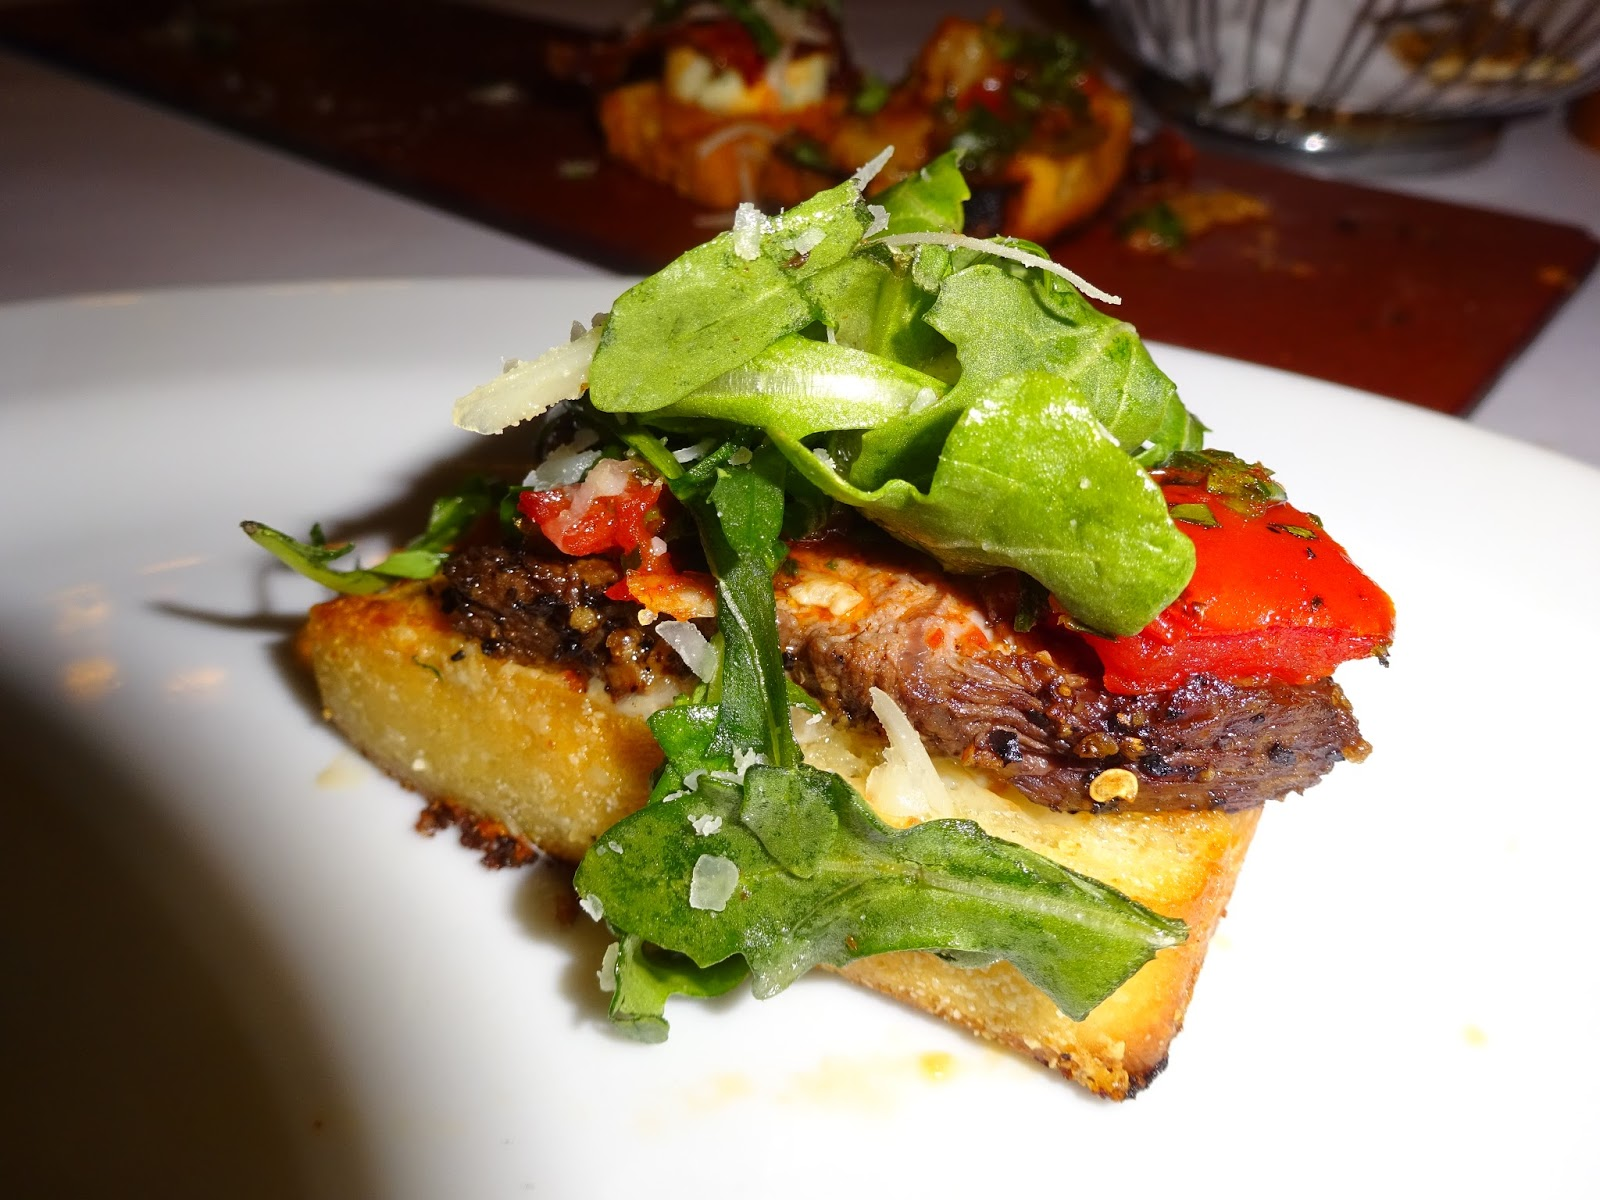 Eating My Way Through OC: A Lively Evening at Brio Tuscan Grille